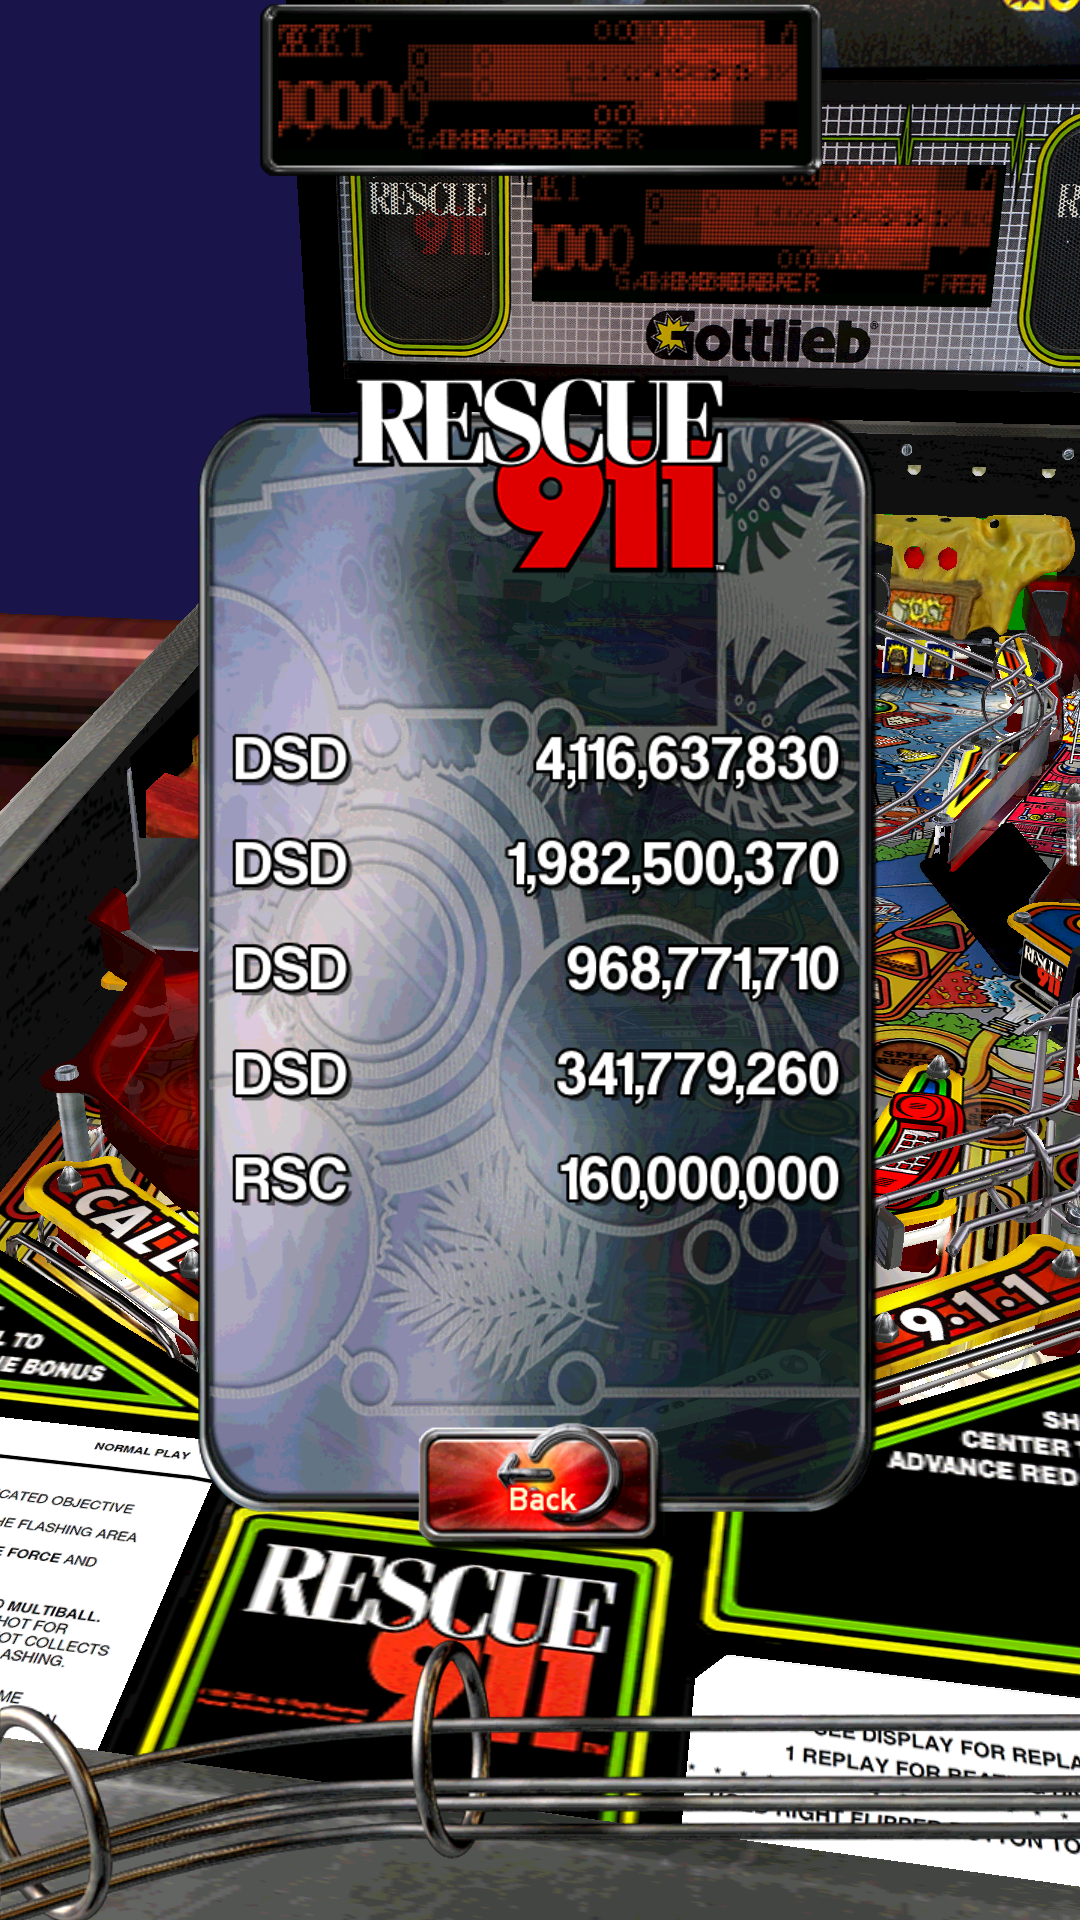 jondsd: Pinball Arcade: Rescue 911 (Android) 4,116,637,830 points on 2016-04-18 20:12:30